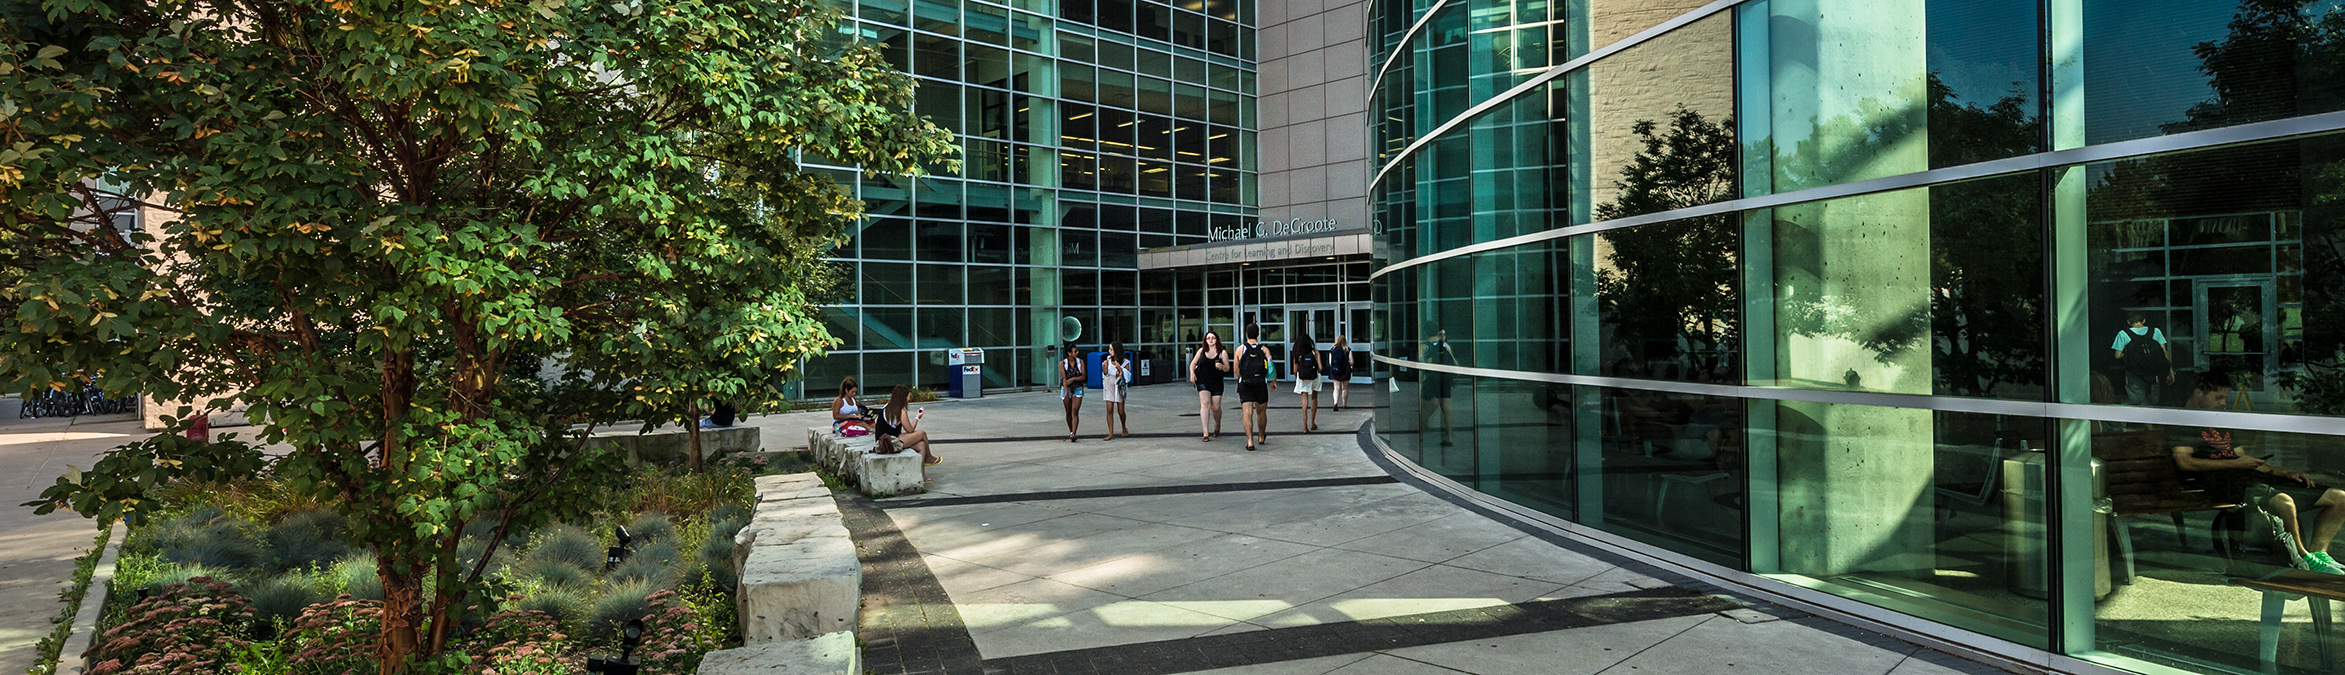 The atrium and front entrance of the MDCL building